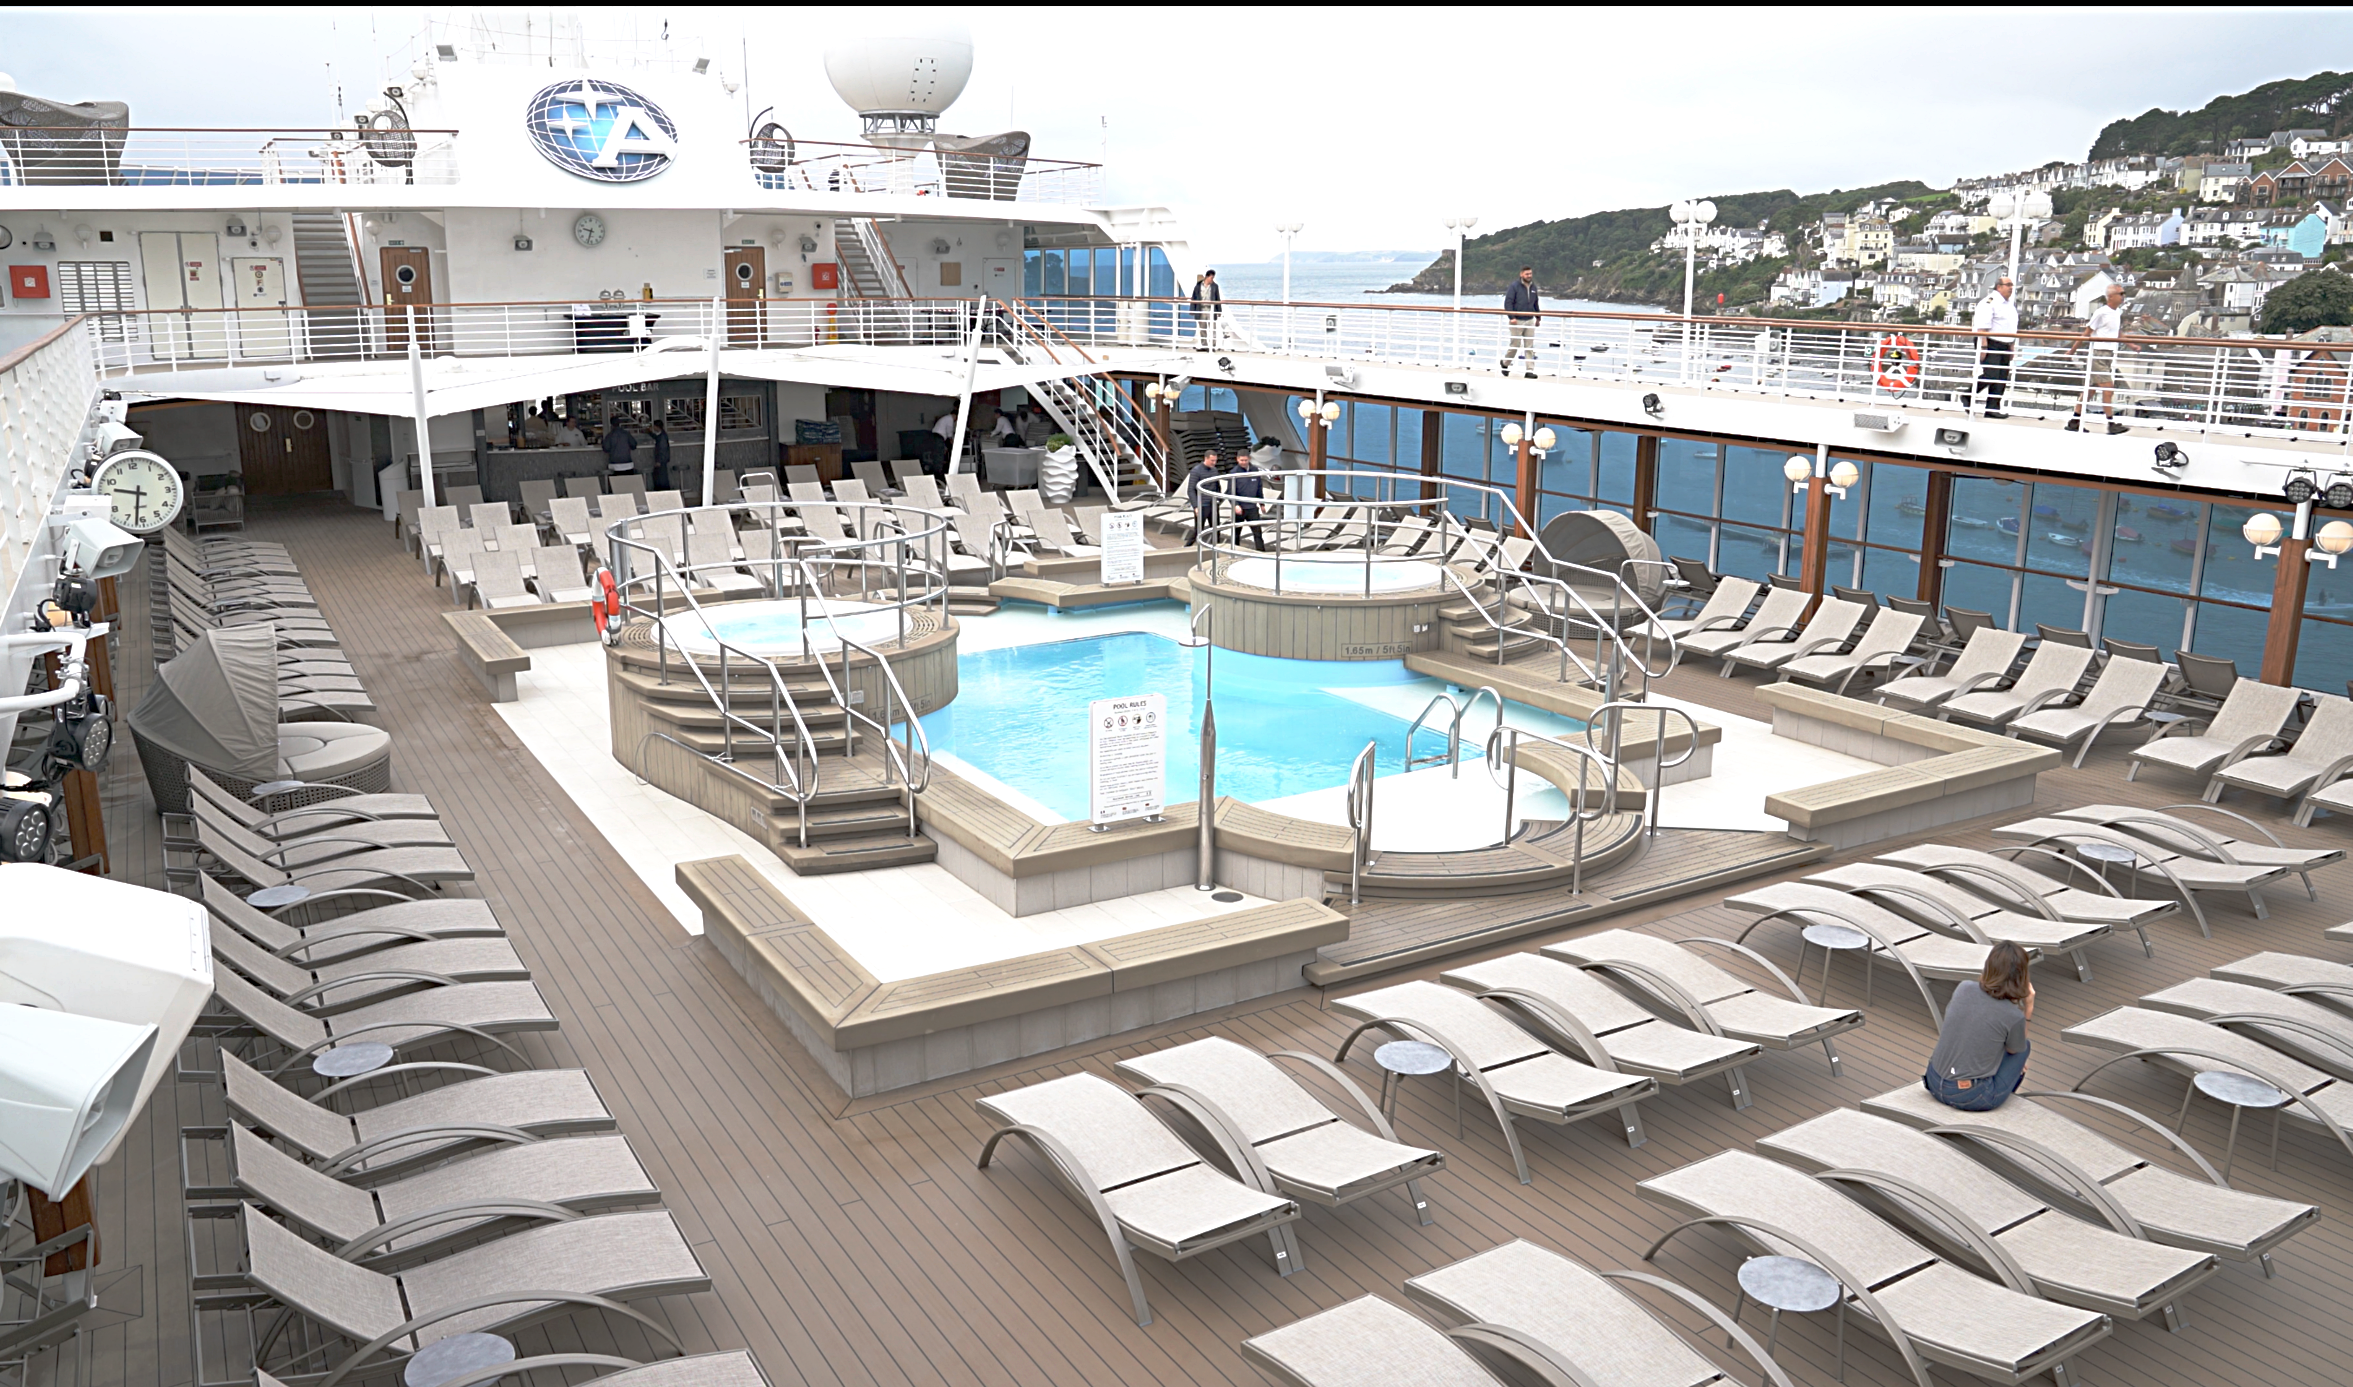 The deserted pool area, just how we like it!